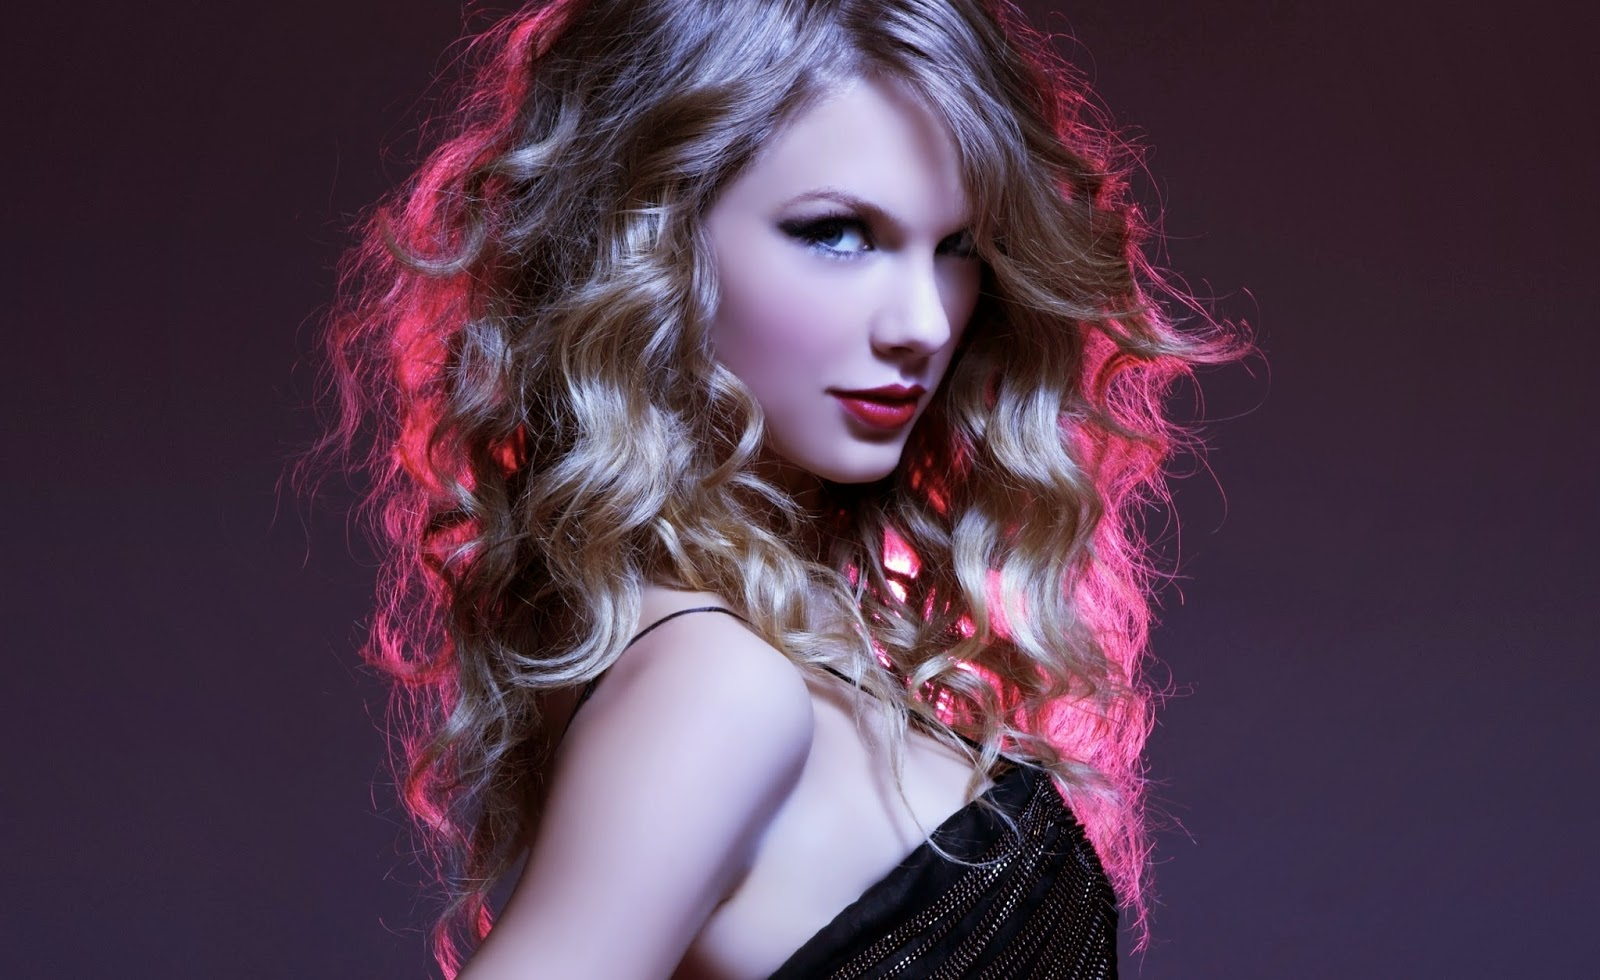 Taylor Swift Hot 2014 HD Wallpapers and Latest Photo Gallery ~ Super HD Wallpaperss